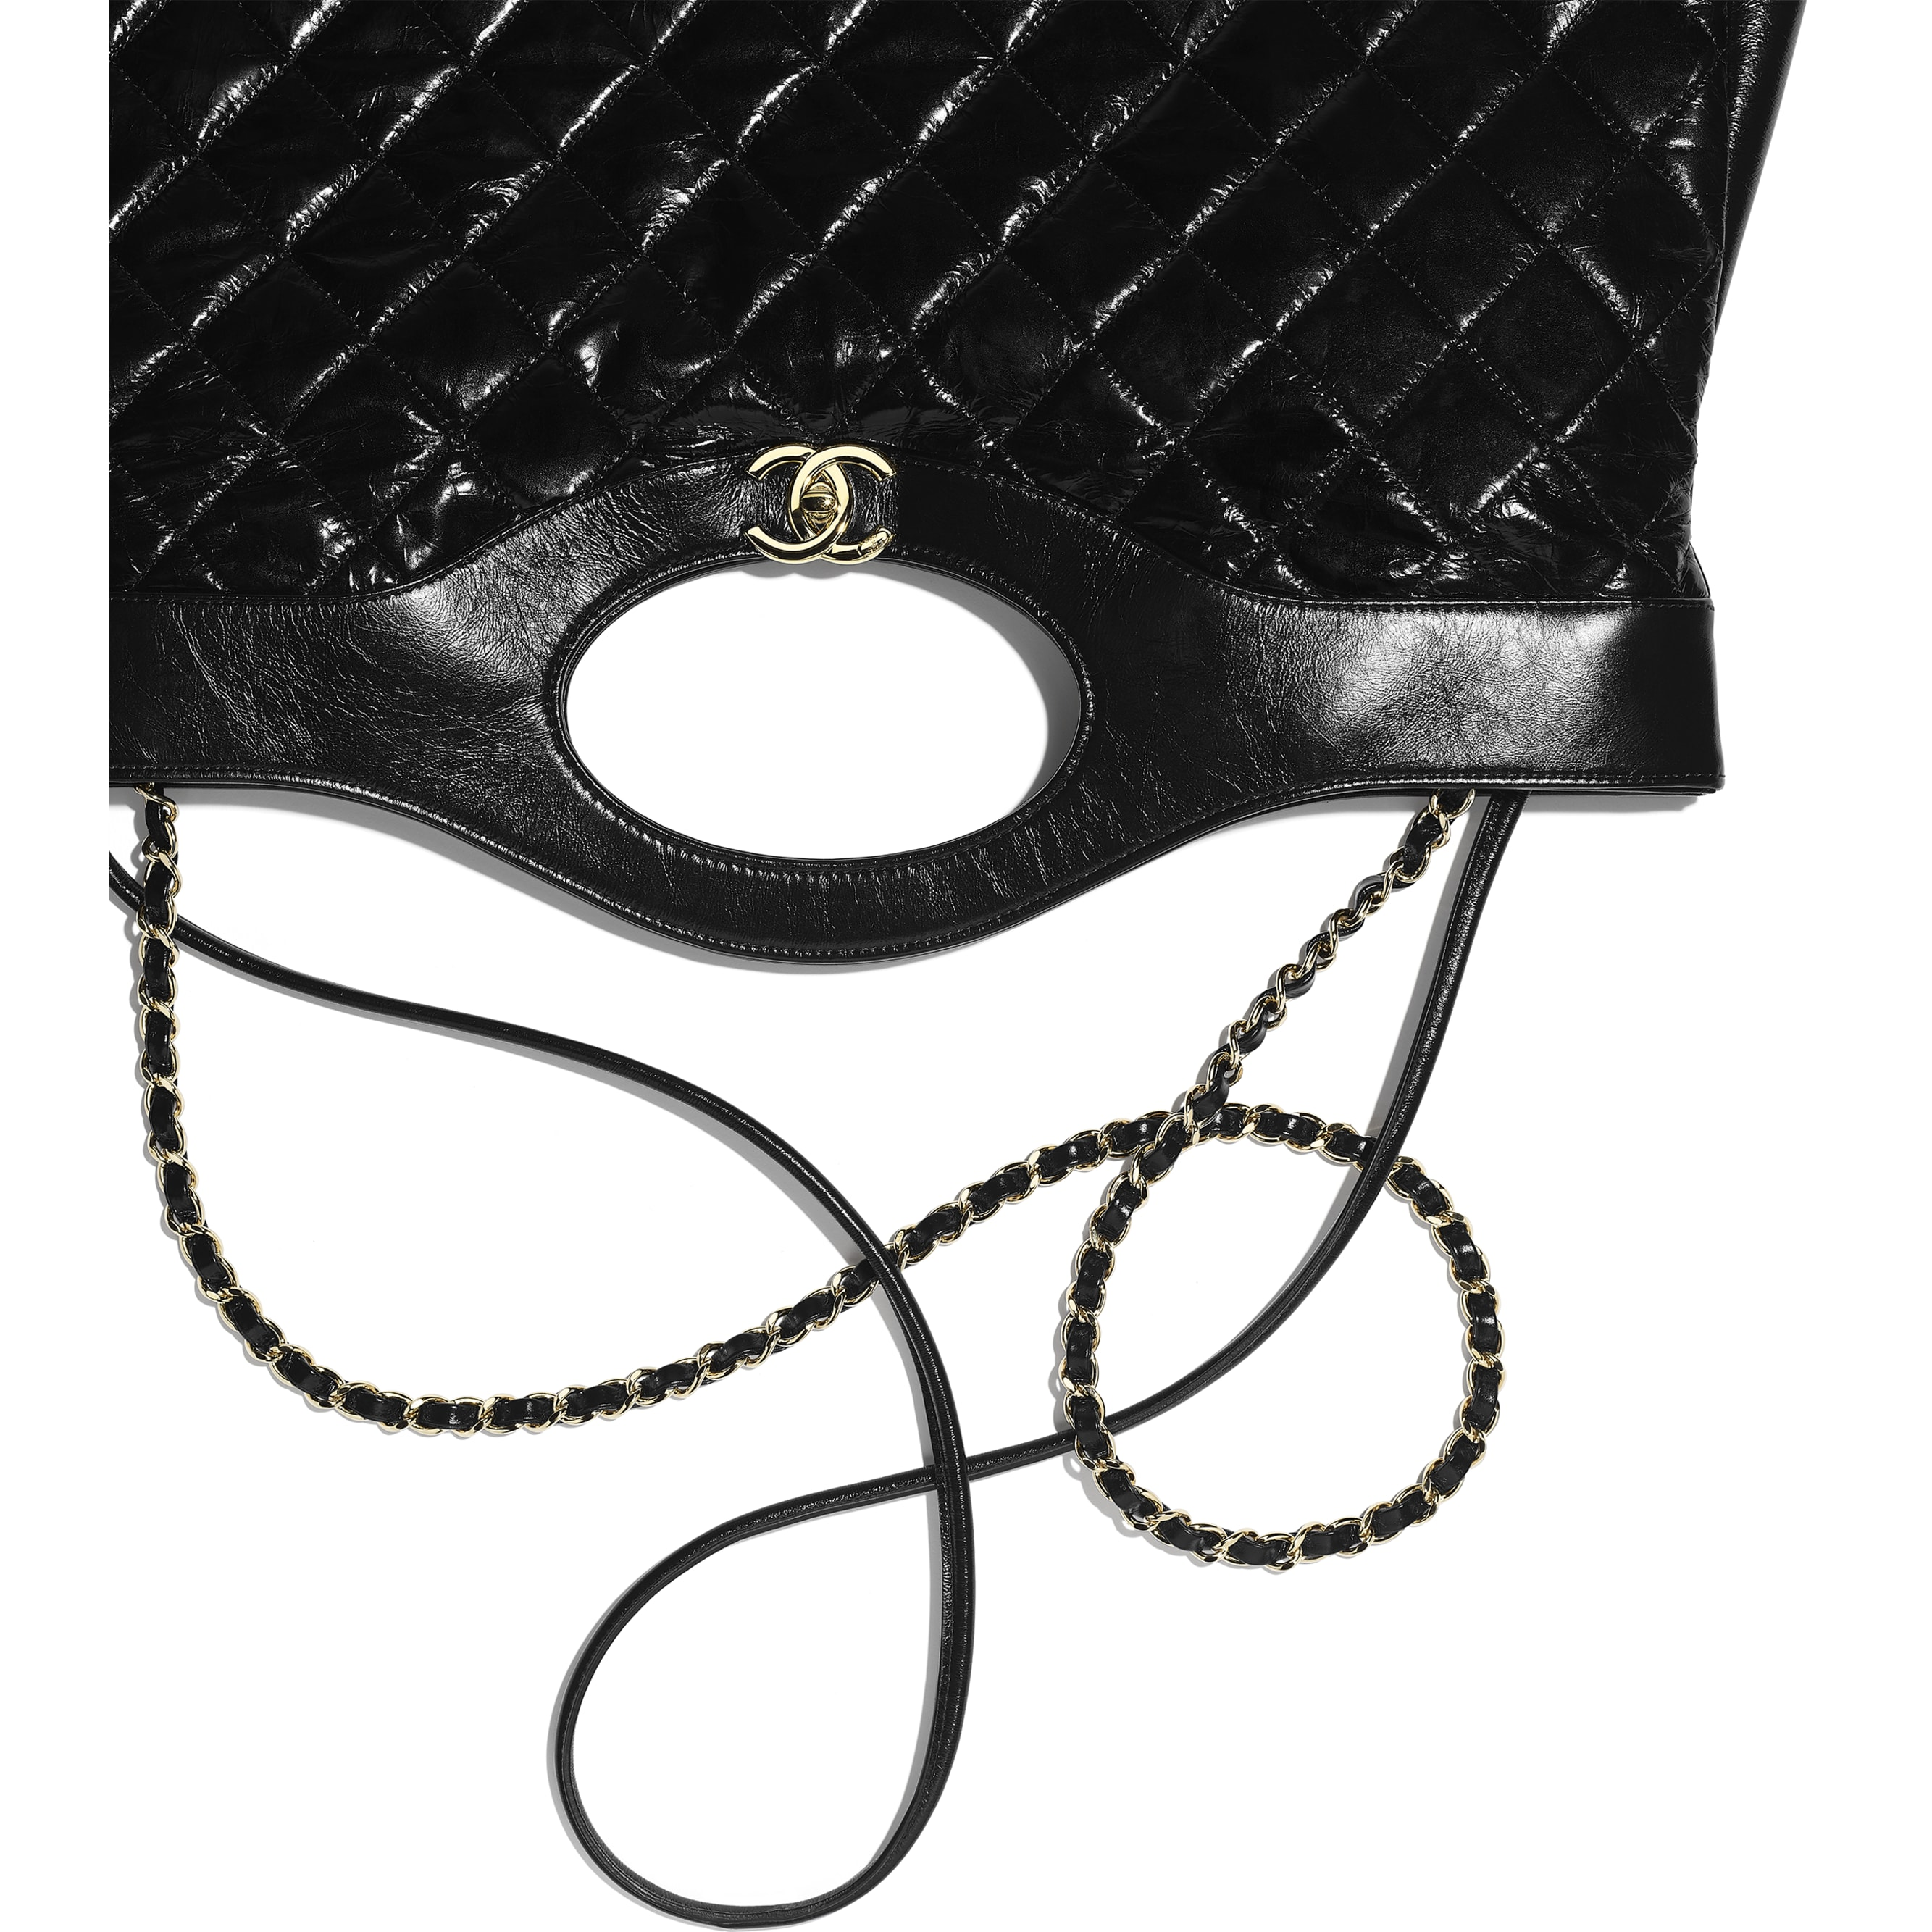 CHANEL 31 Large Shopping Bag - Black - Shiny Crumpled Calfskin & Gold-Tone Metal - Extra view - see standard sized version